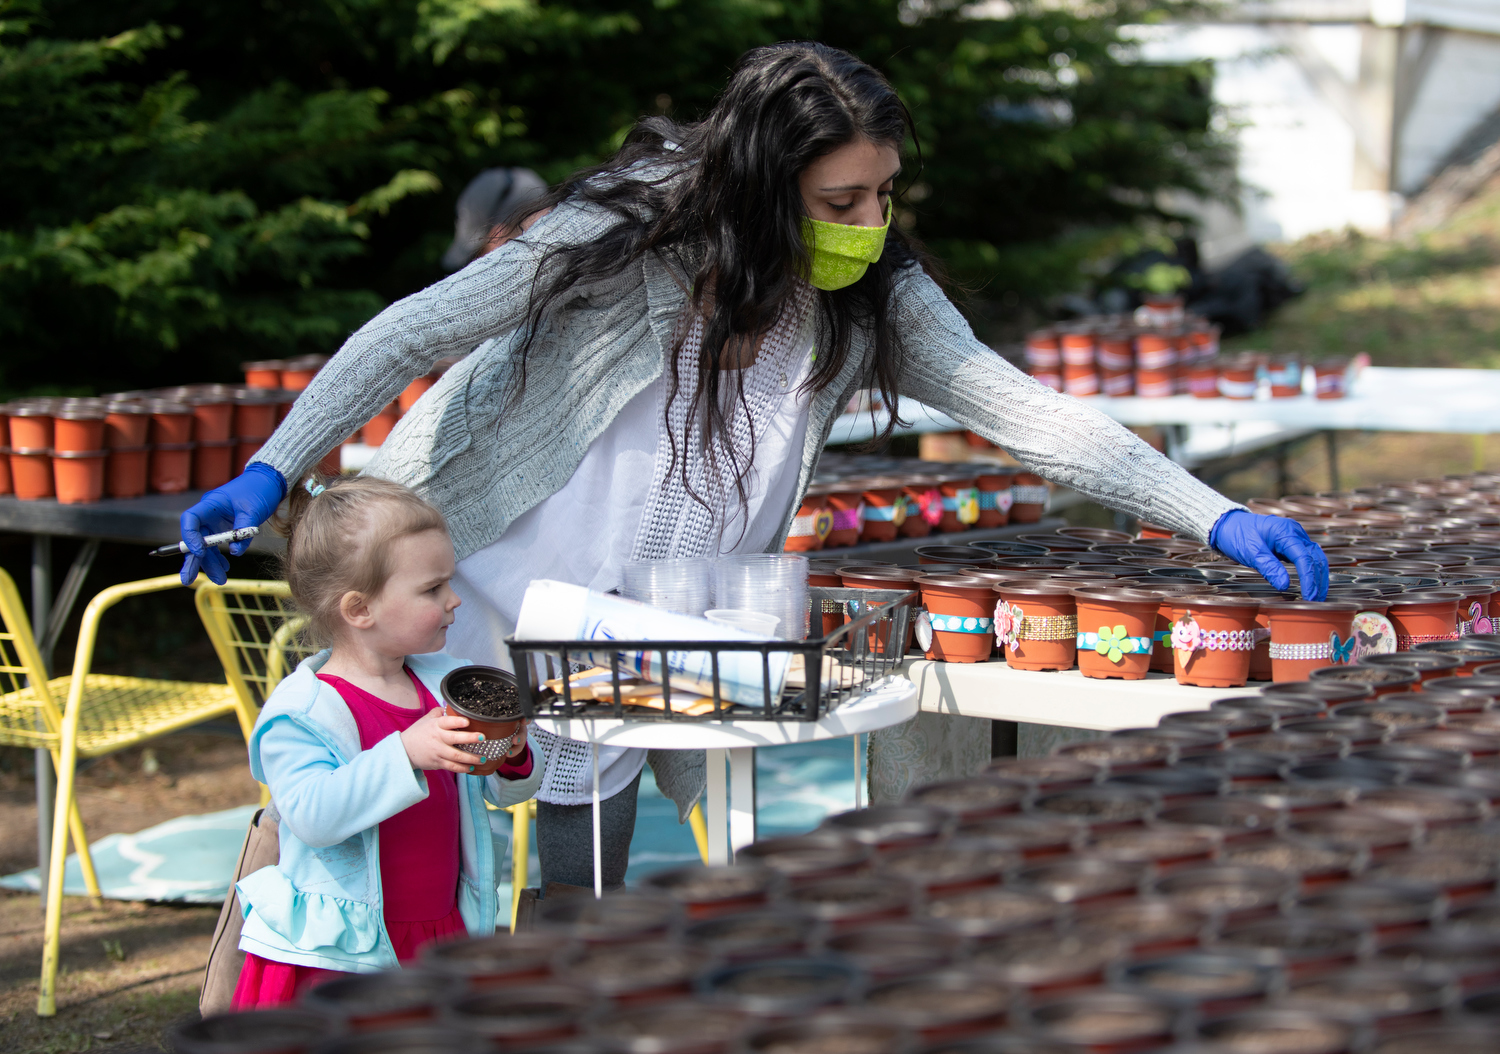 """HARWICH - Sarah Dennis, an on-call CNA, plants marigold and alyssum seeds with a little help from her 2-year-old daughter Maggie, Thursday, April 16, 2020. In just one week she went from a couple hundred pots to a couple thousand that will be delivered to shut-in seniors at assisting living facilities and cannot have visitors. """"We want them to know that they're not forgotten and we're thinking of them right now,"""" Dennis said of her initiative."""